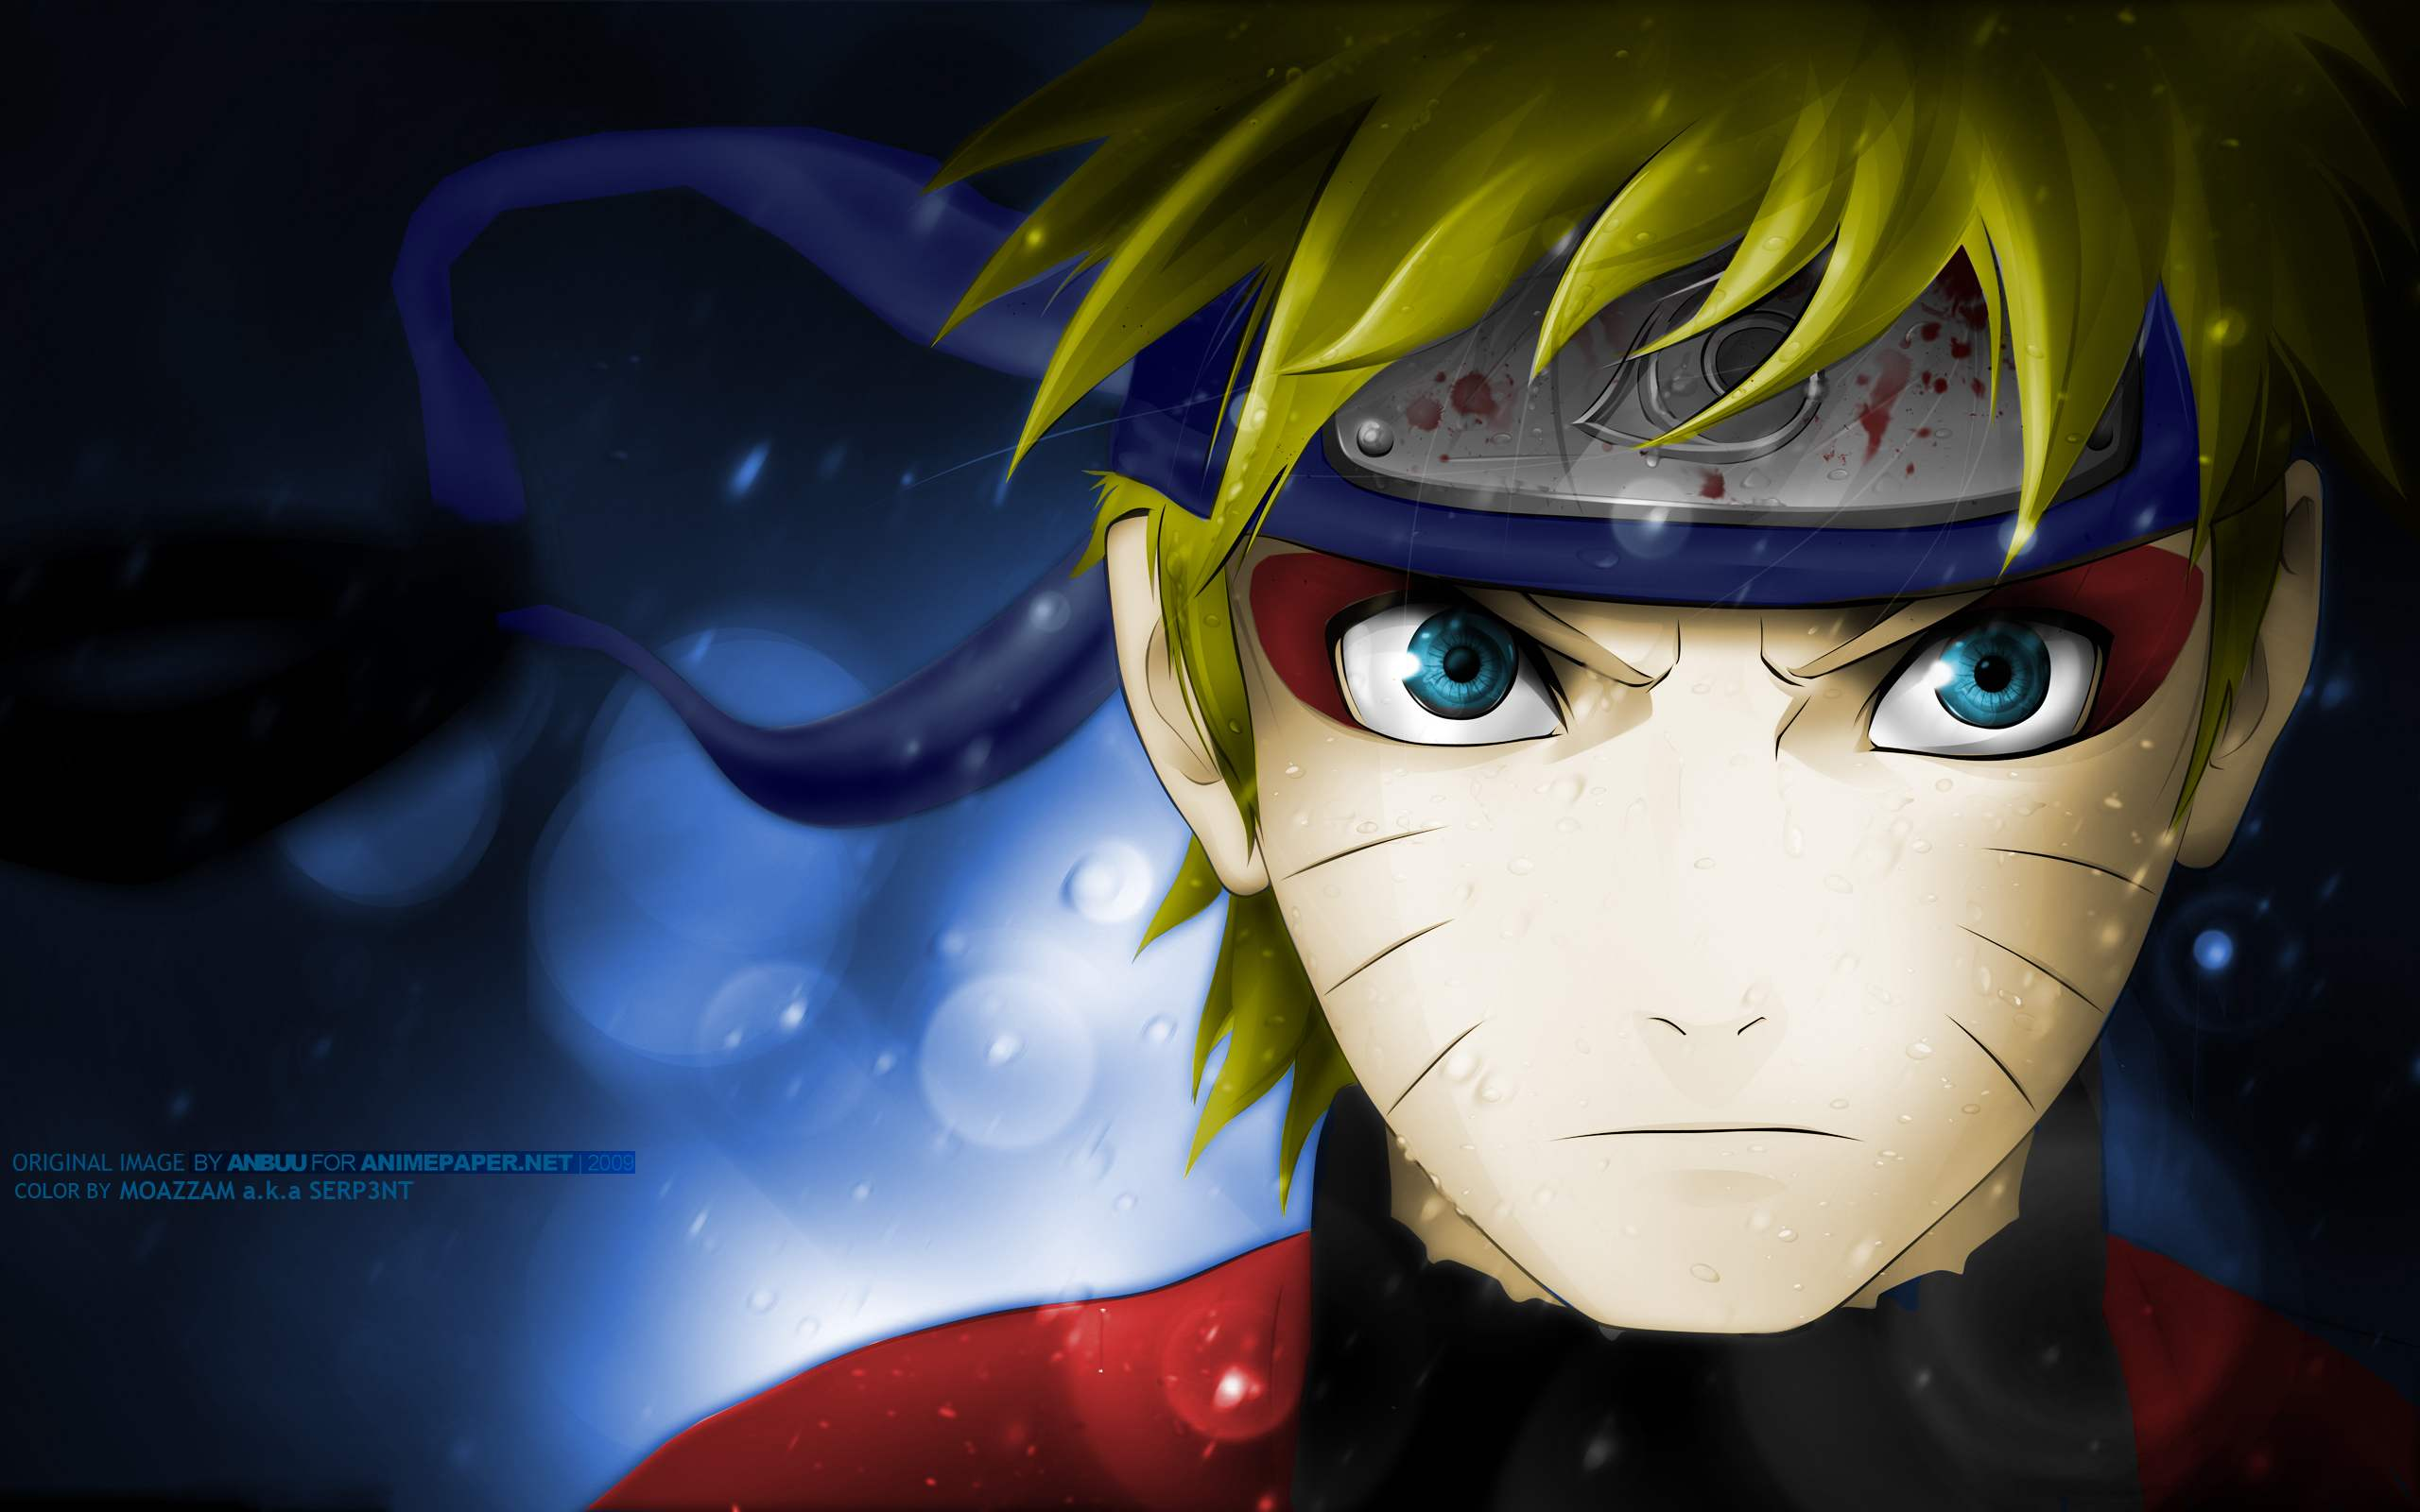 Naruto Shippuden Terbaru Widescreen Wallpaper 2560x1600